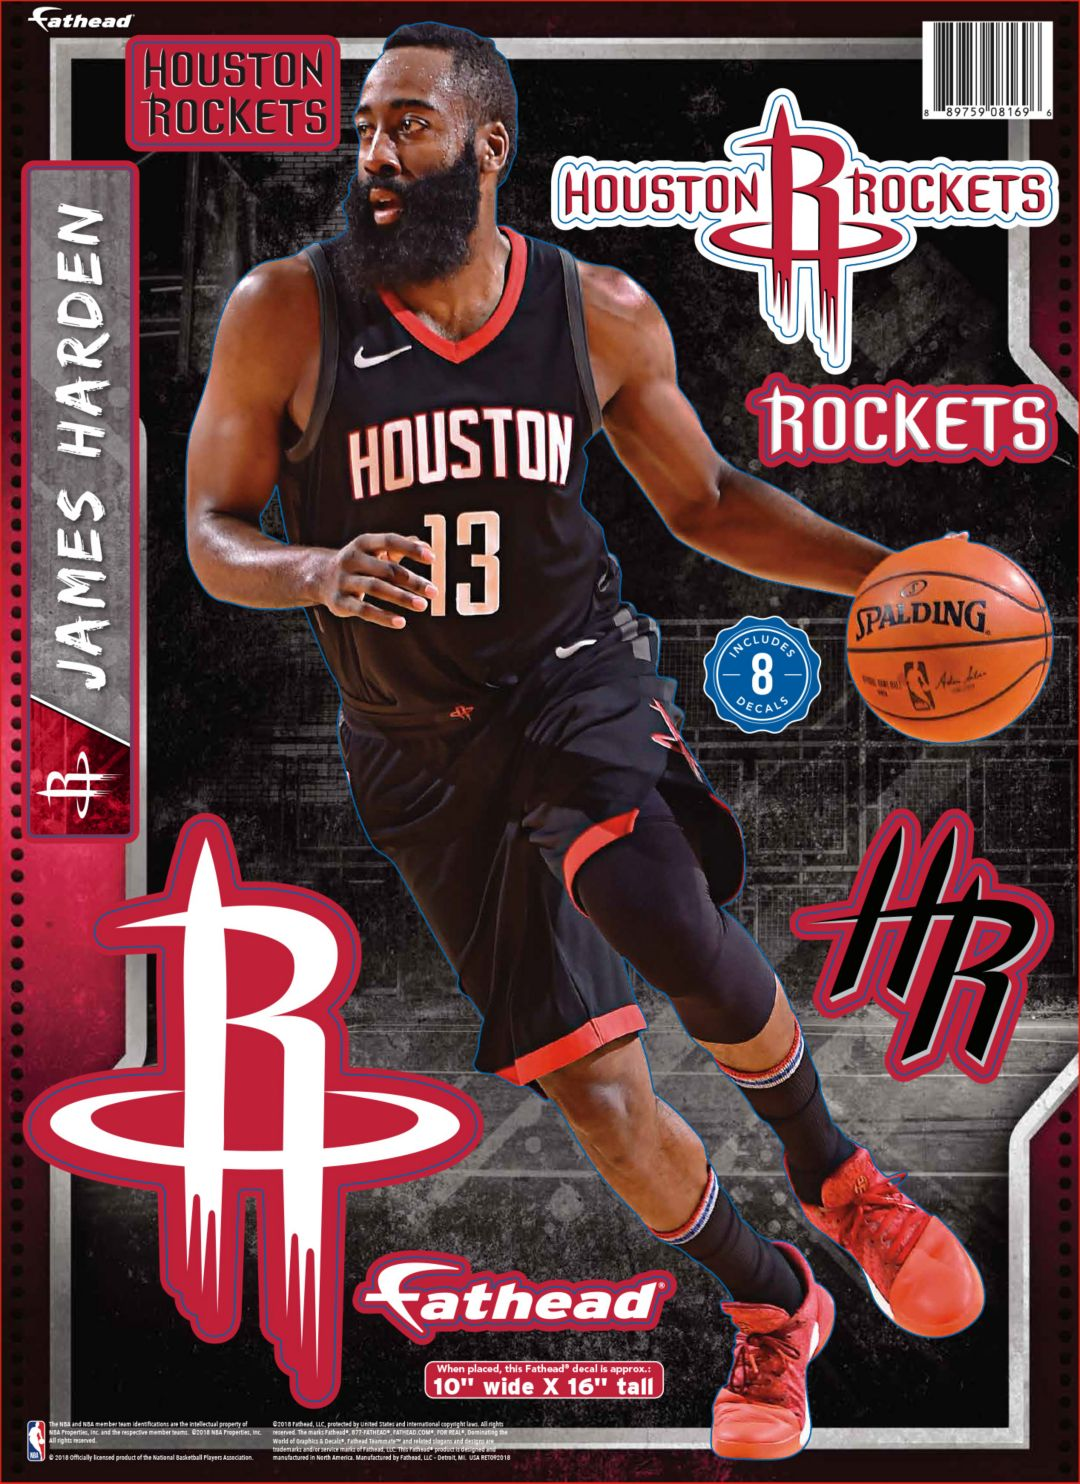 reputable site 9d1af ac7bf Fathead Houston Rockets James Harden Wall Decal